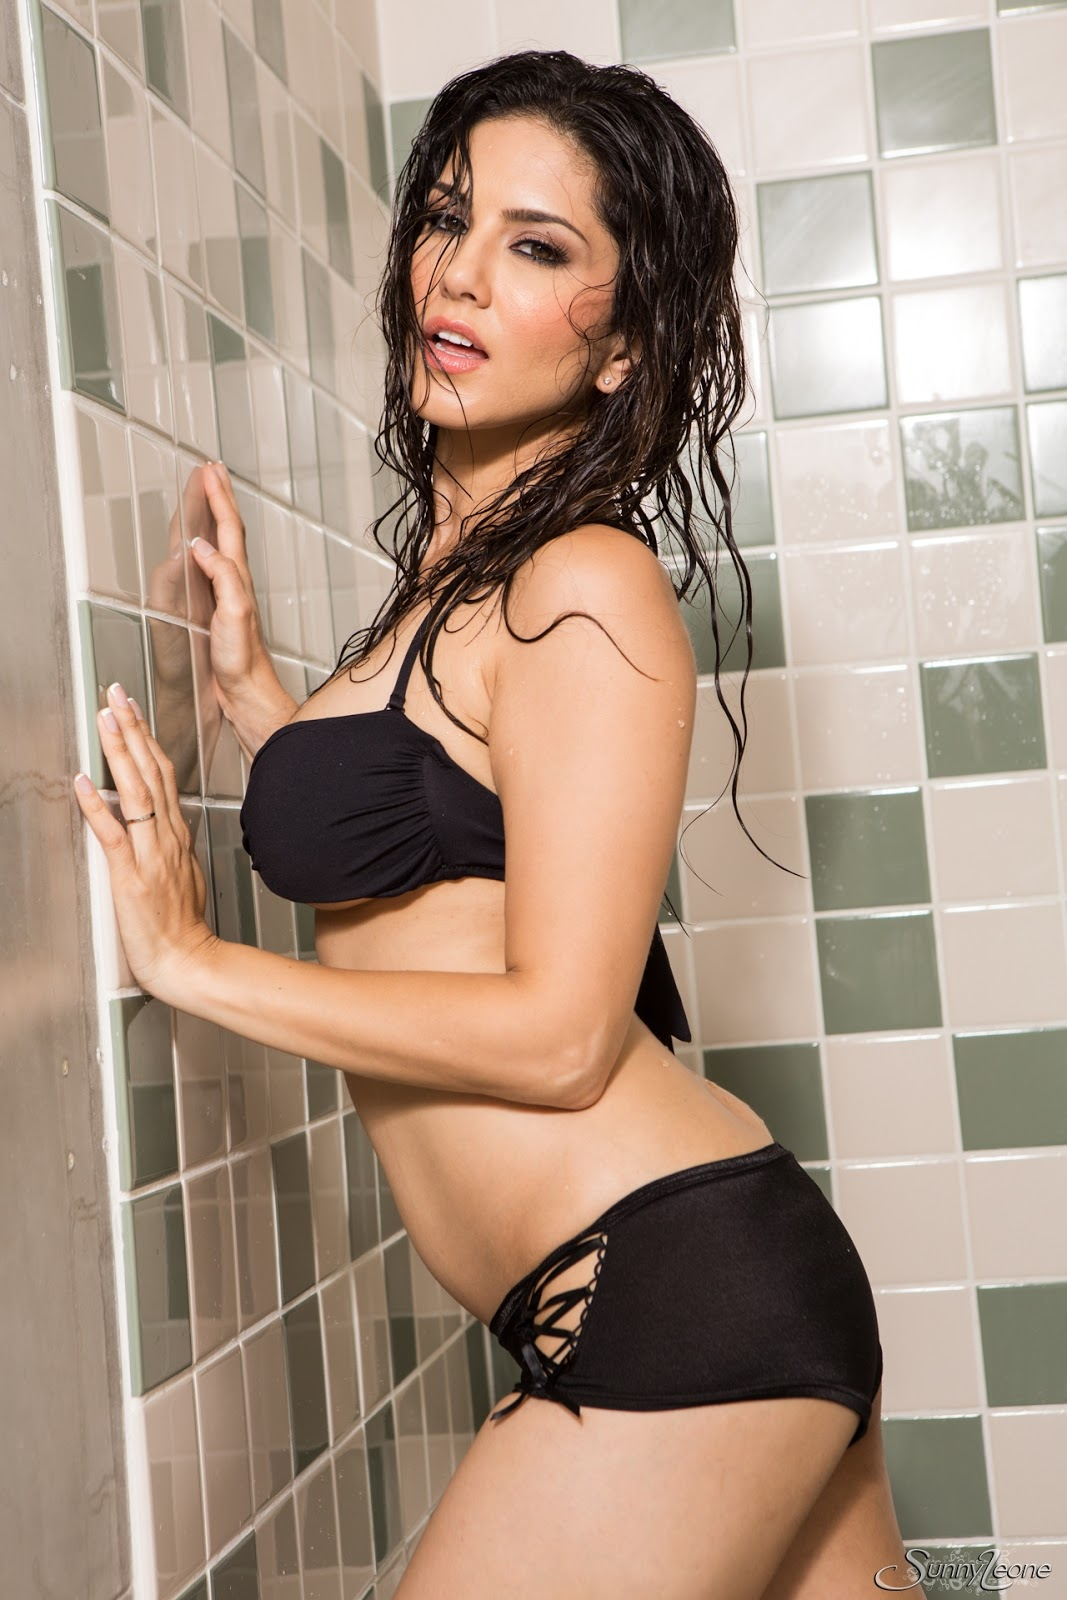 Sunny Leone Is Taking A Hot Shower While In Her Black Wet -7031